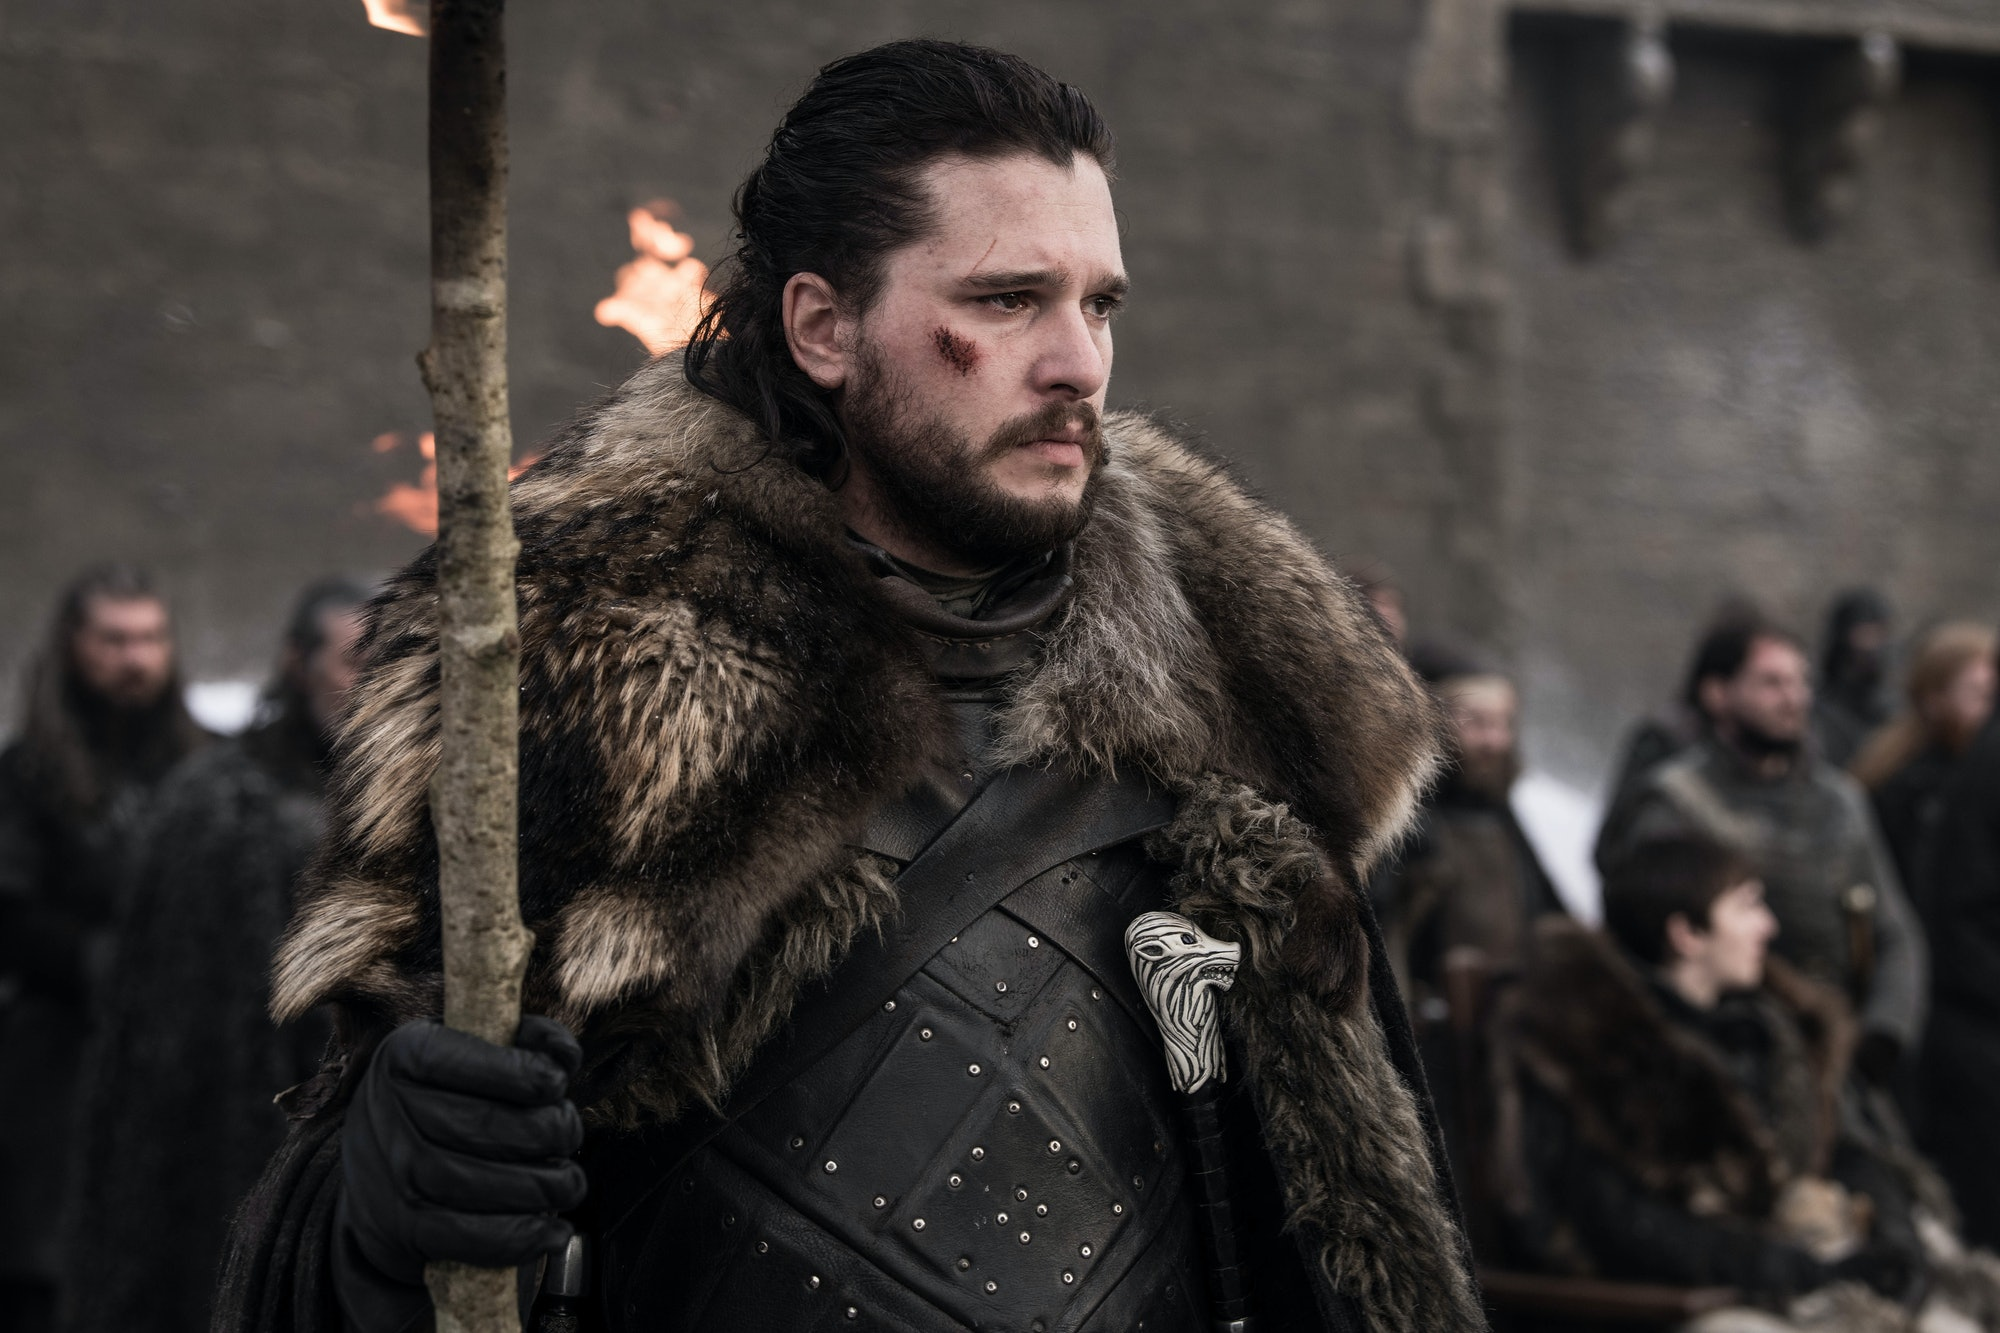 How will Jon Snow get on after the Battle of Winterfell?